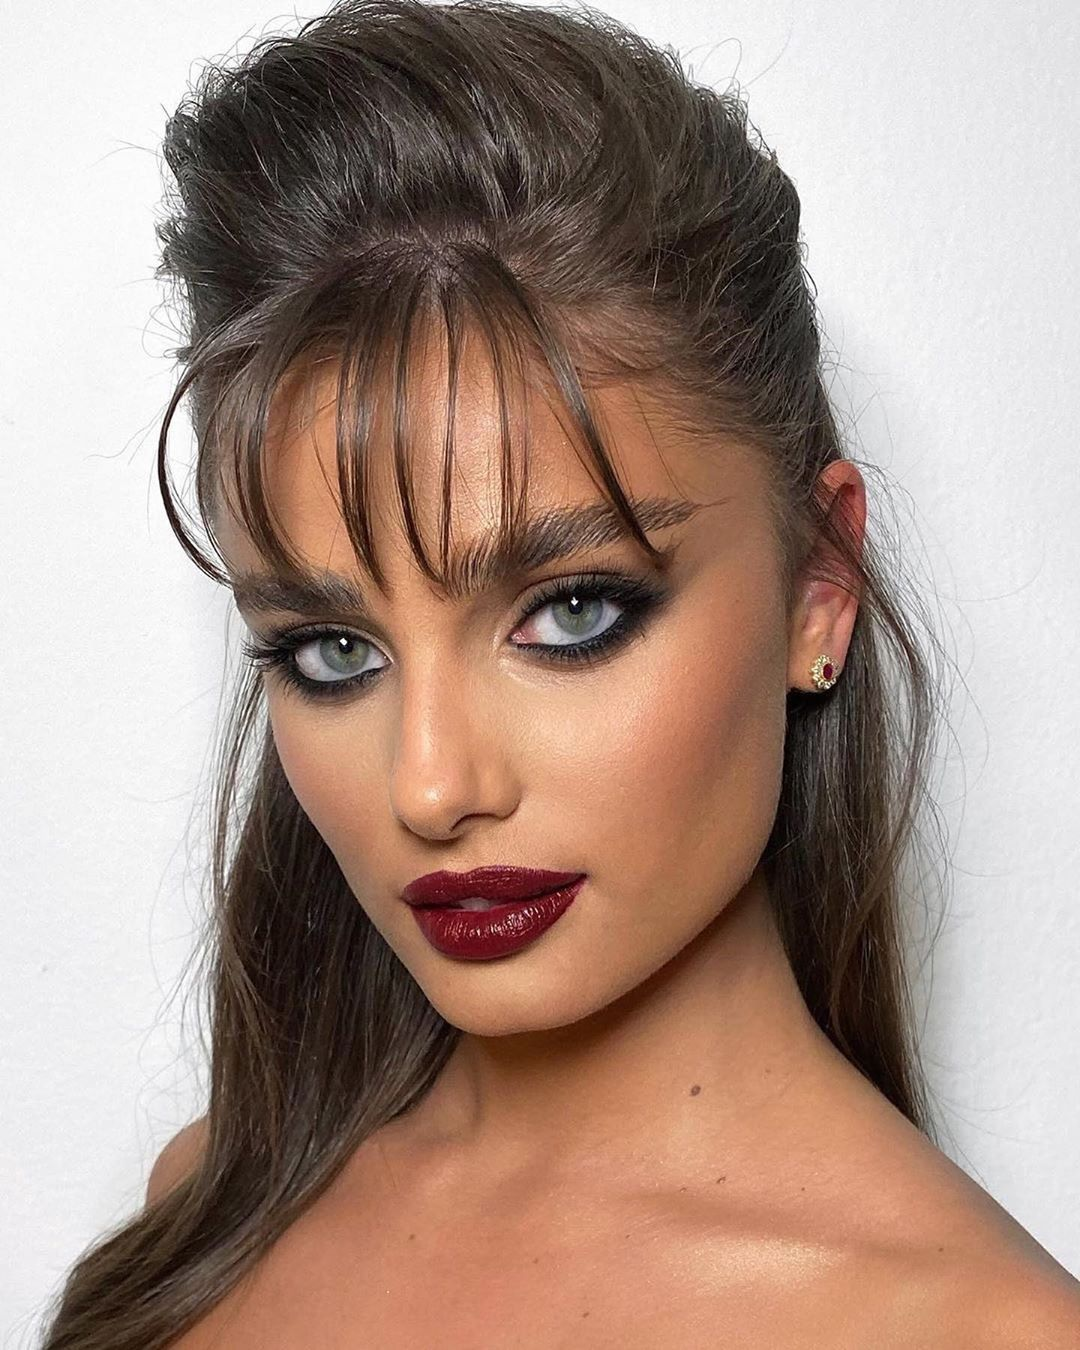 Pin by ROZA on Makeup in 2020 Celebrity makeup looks